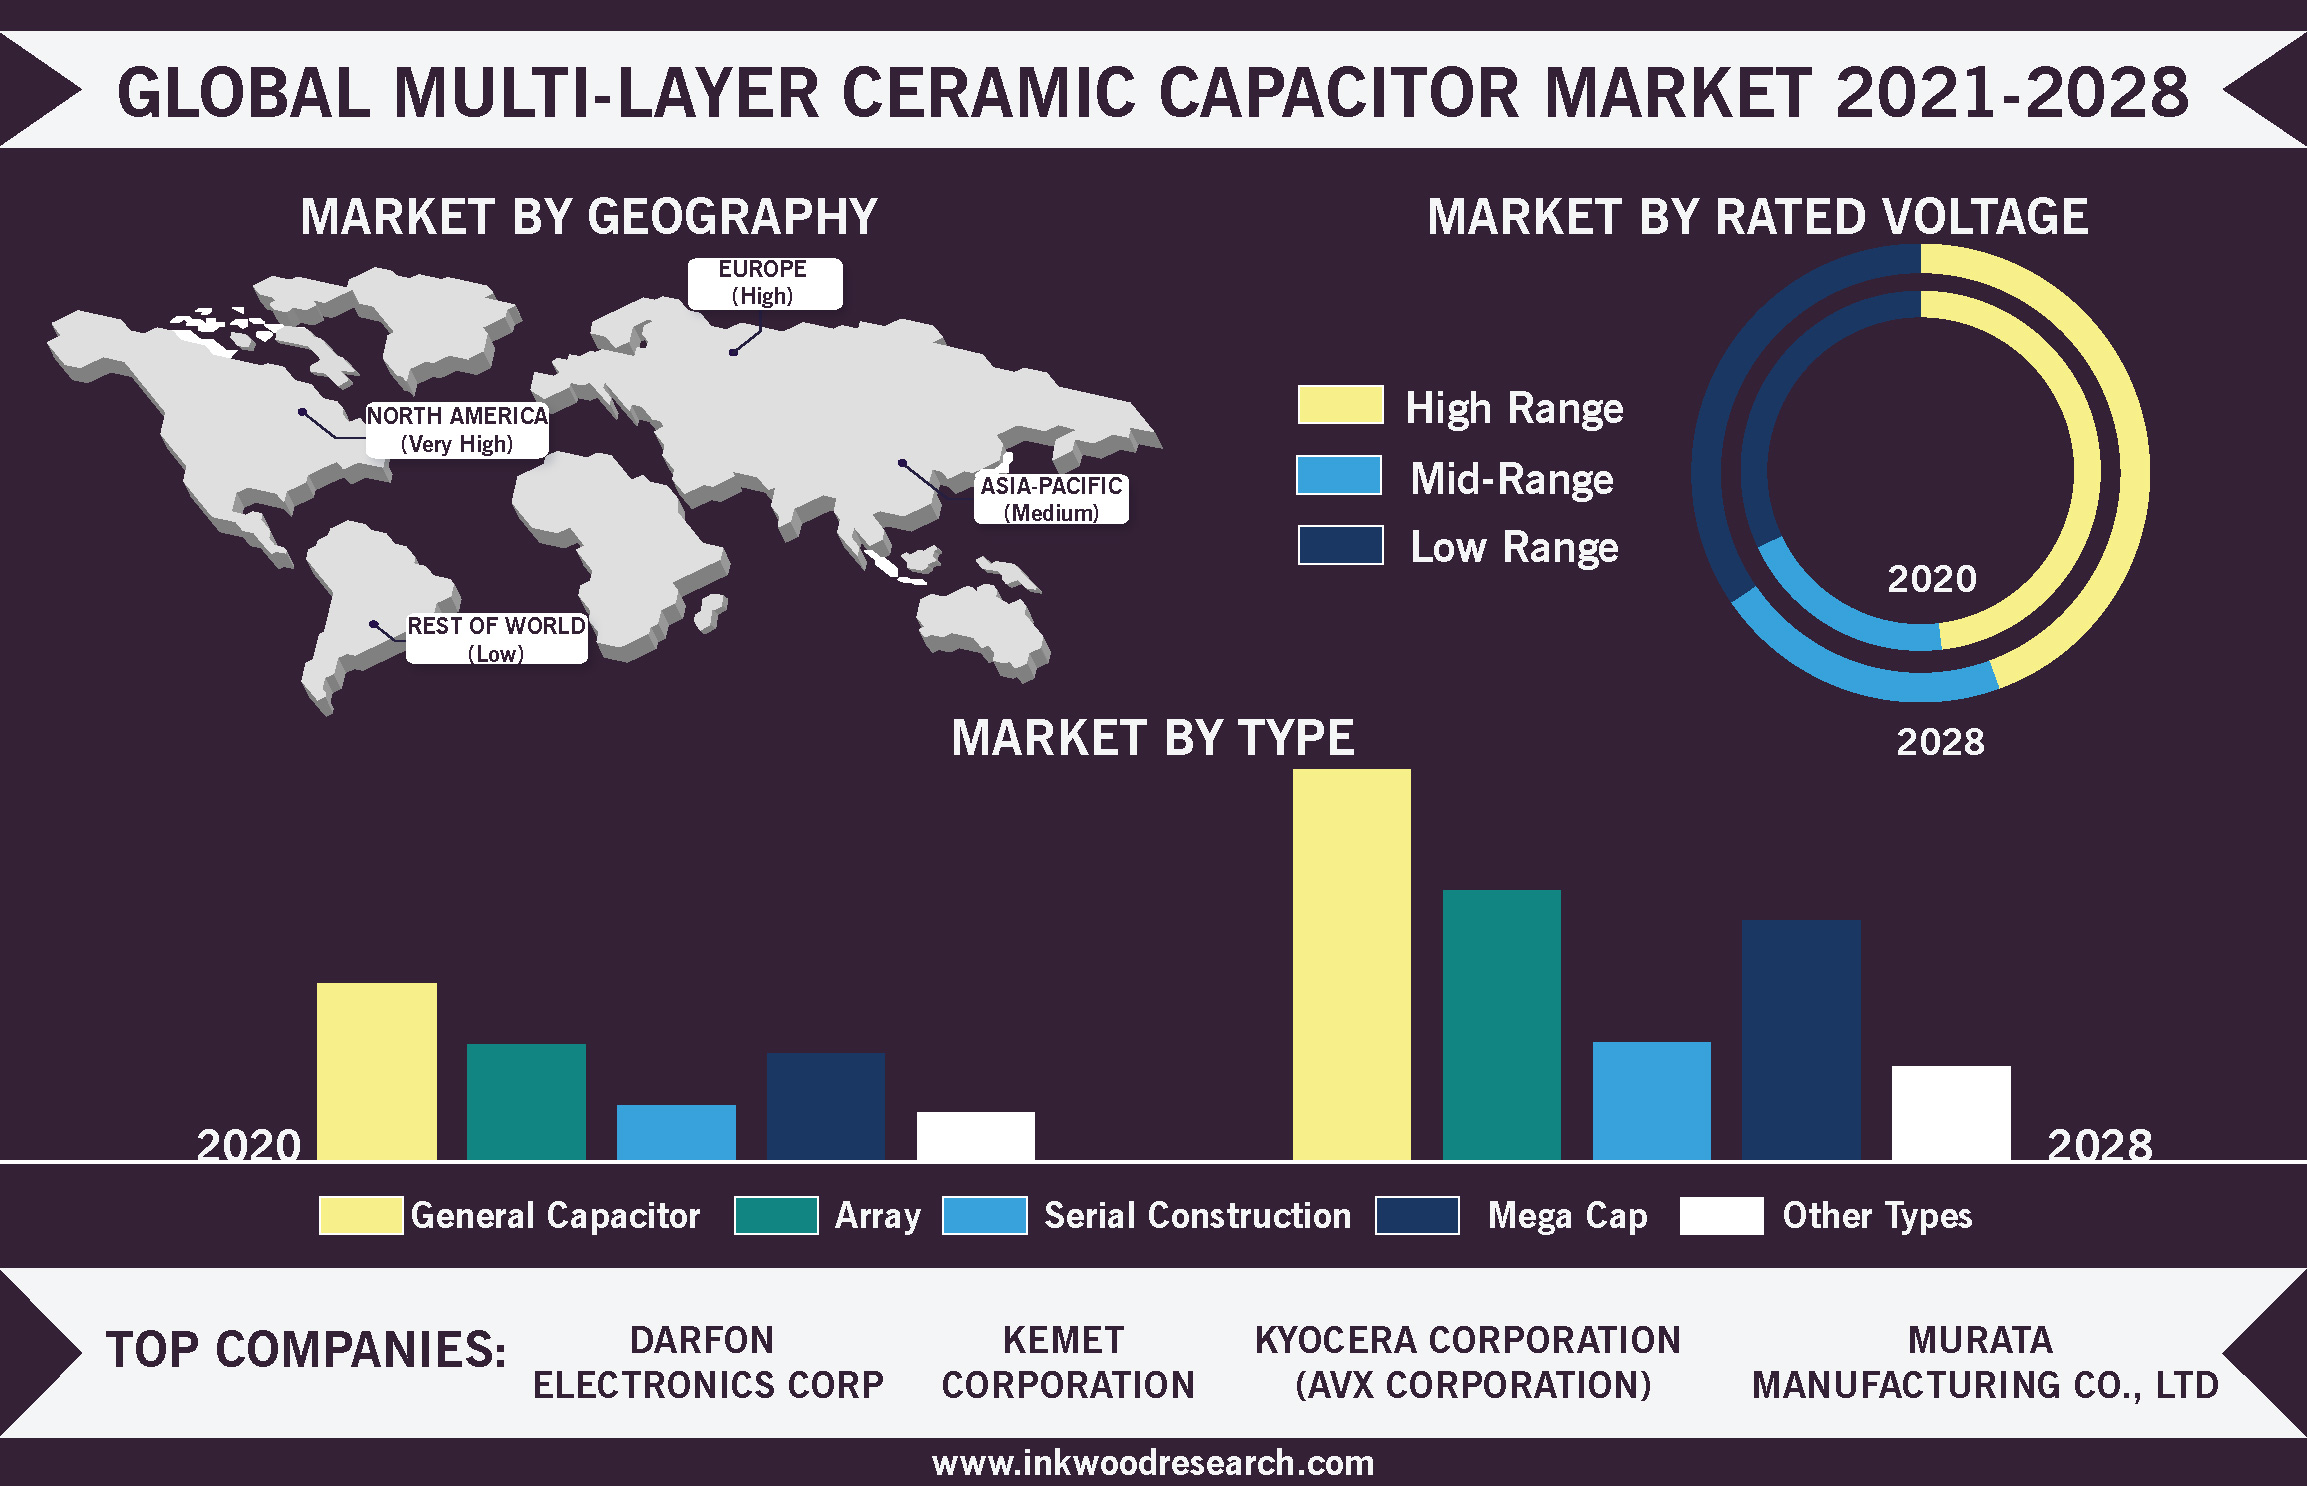 Demand from Consumer Electronics will drive the Global Multi-Layer Ceramic Capacitor Market